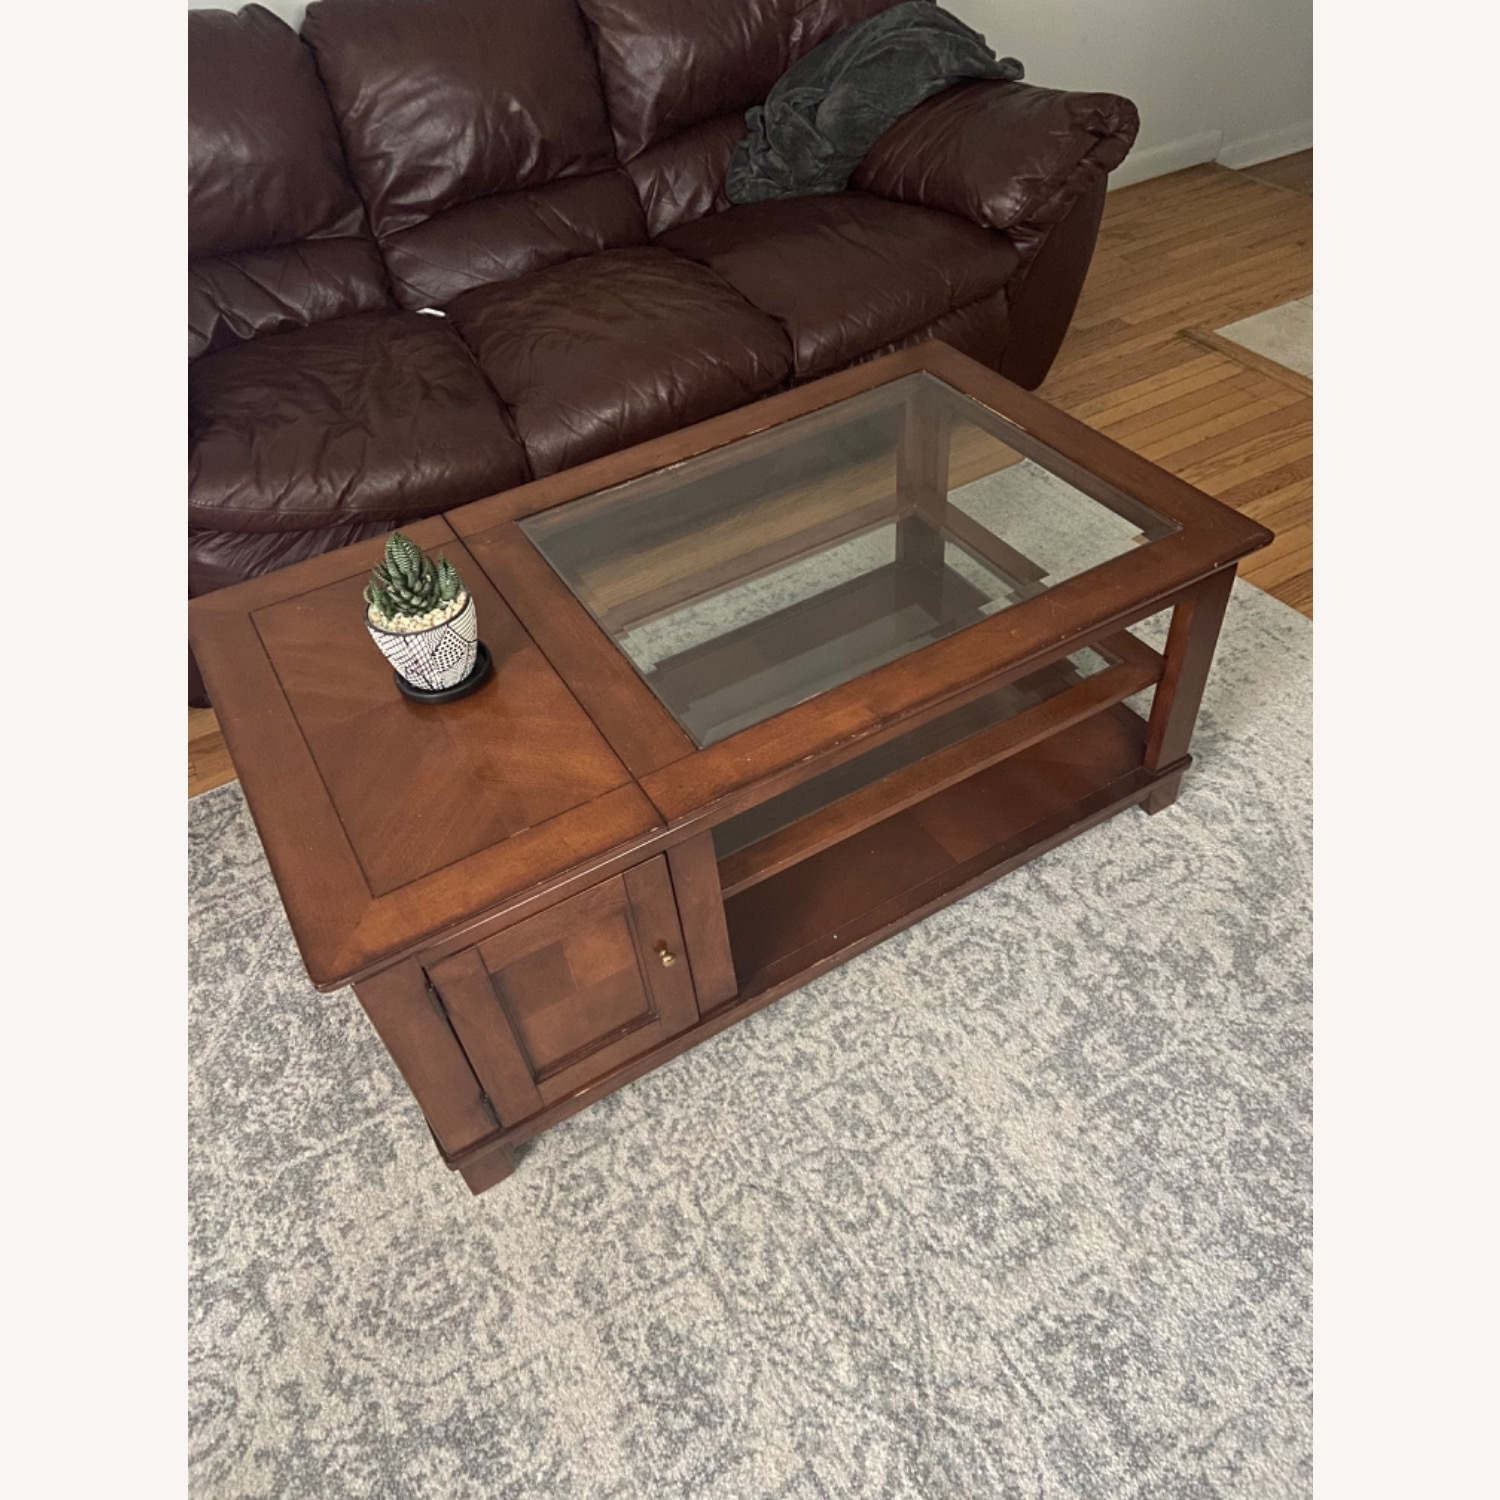 Brown Wooden Coffee Table with Glass Shelves - image-1